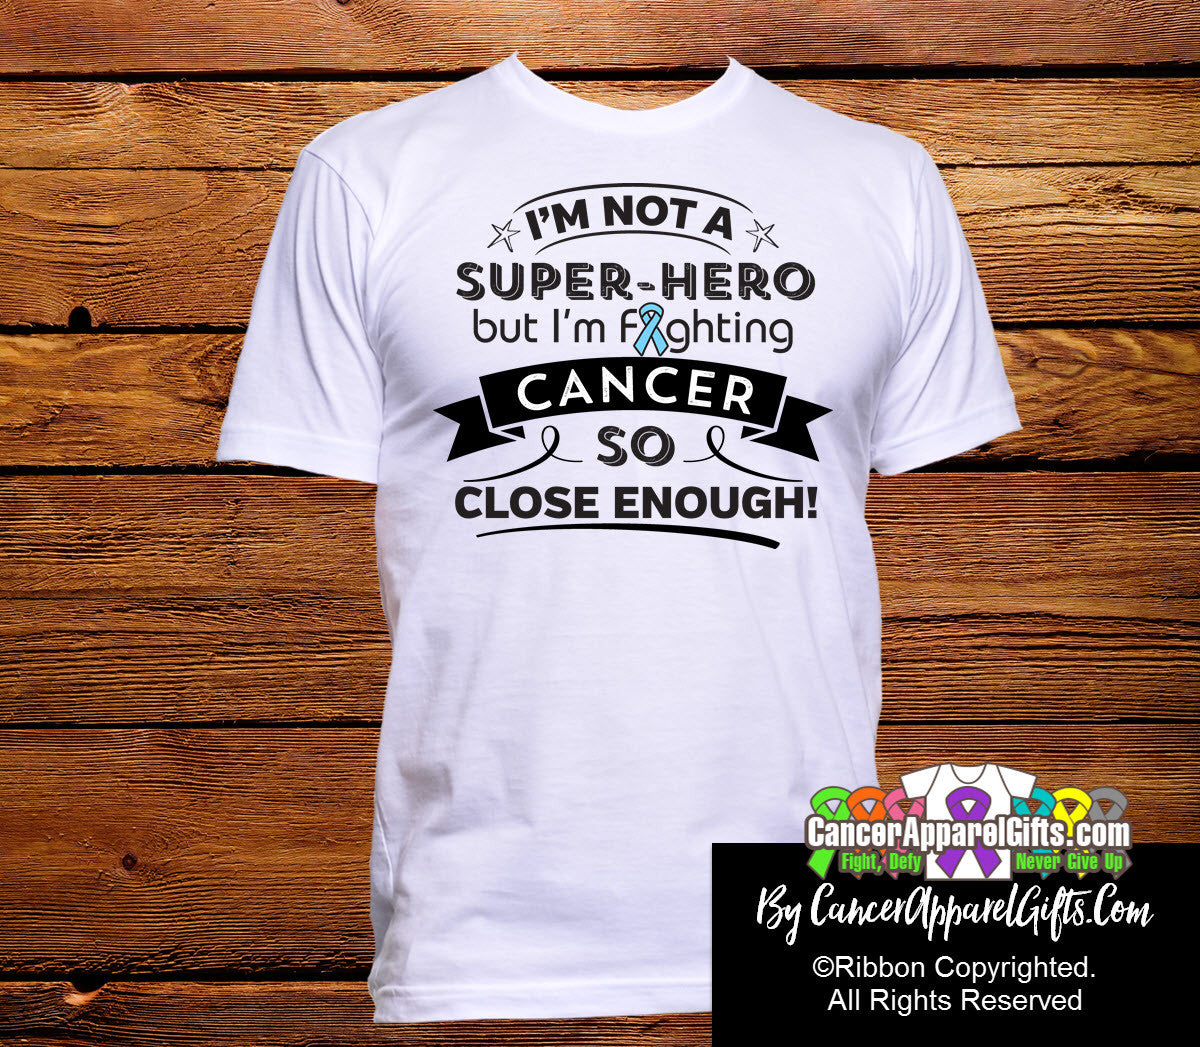 Prostate Cancer Not a Super-Hero Shirts